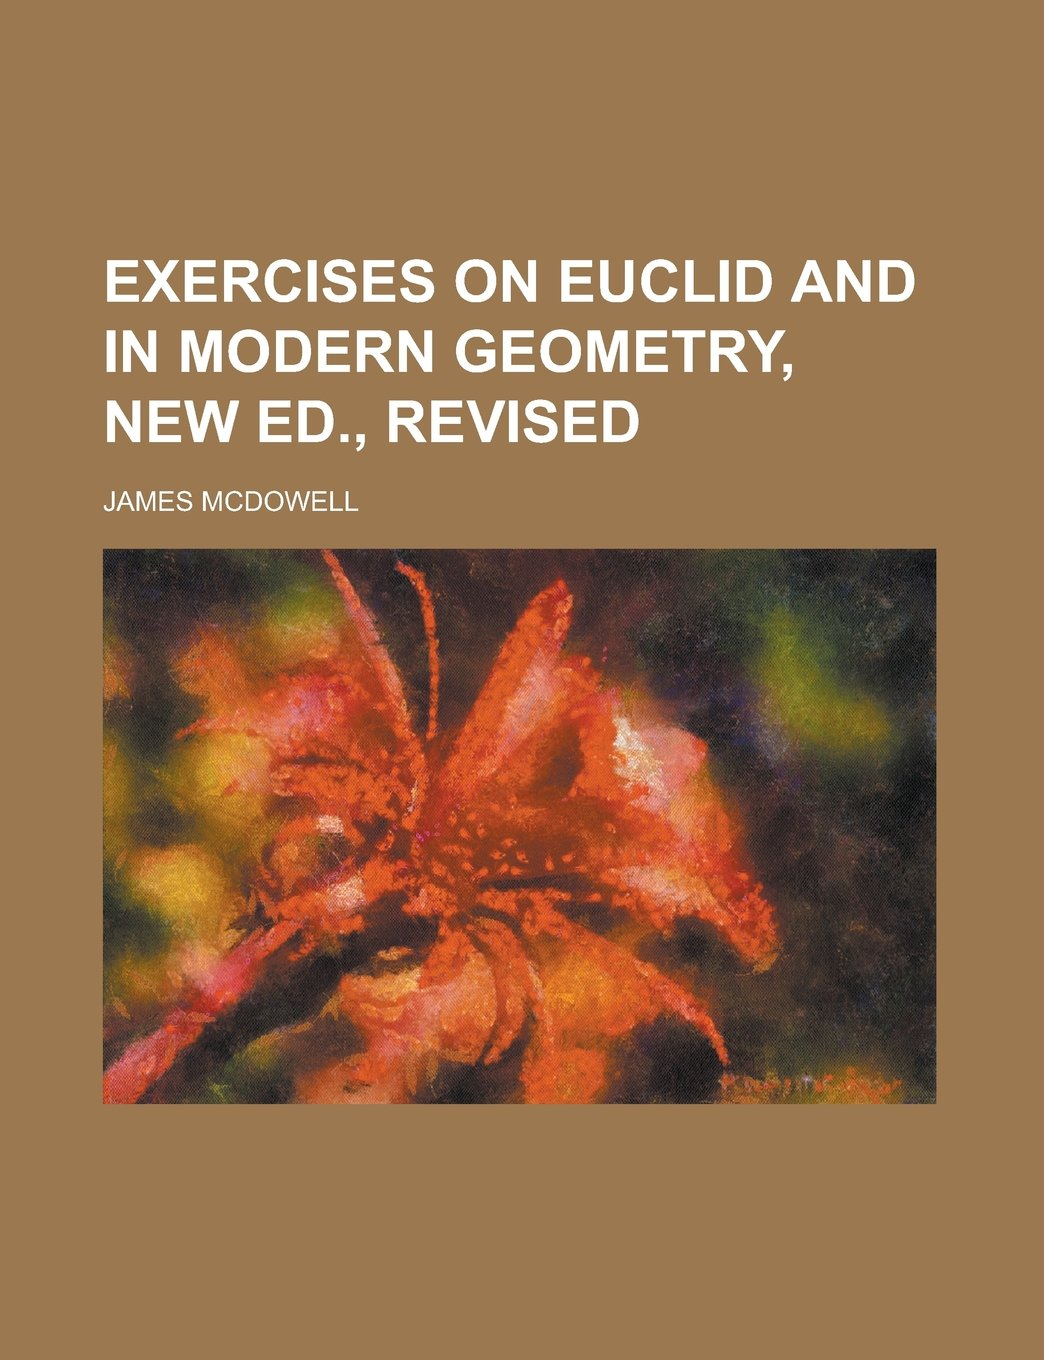 Exercises on Euclid and in modern geometry, New ed , revised: James